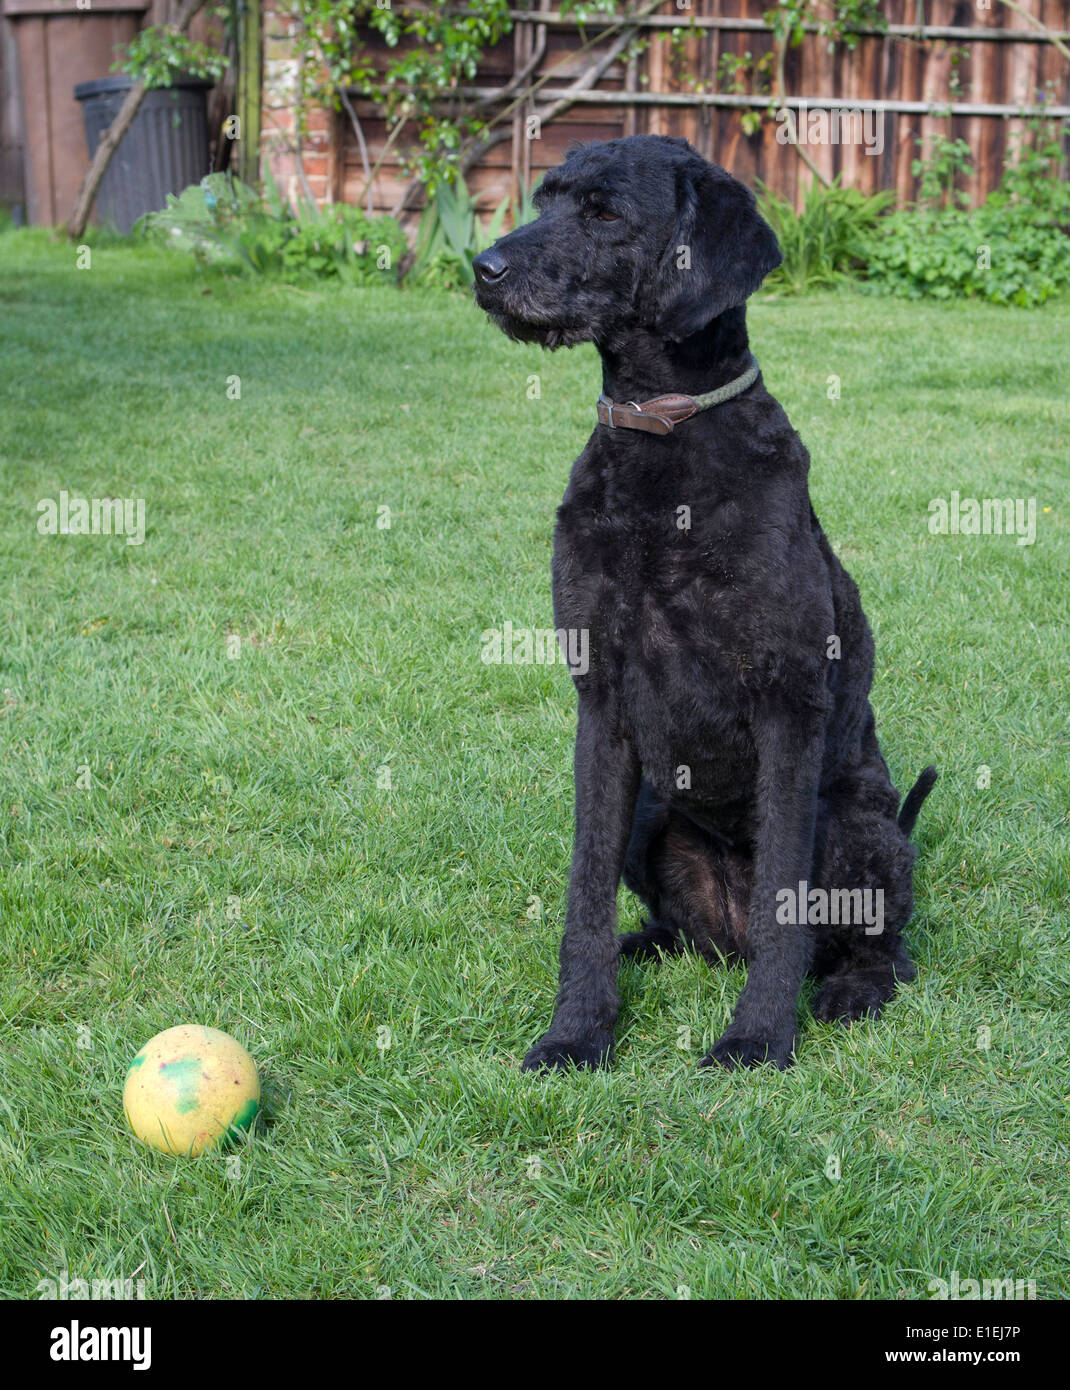 Black Labradoodle recently clipped on lawn with ball - Stock Image